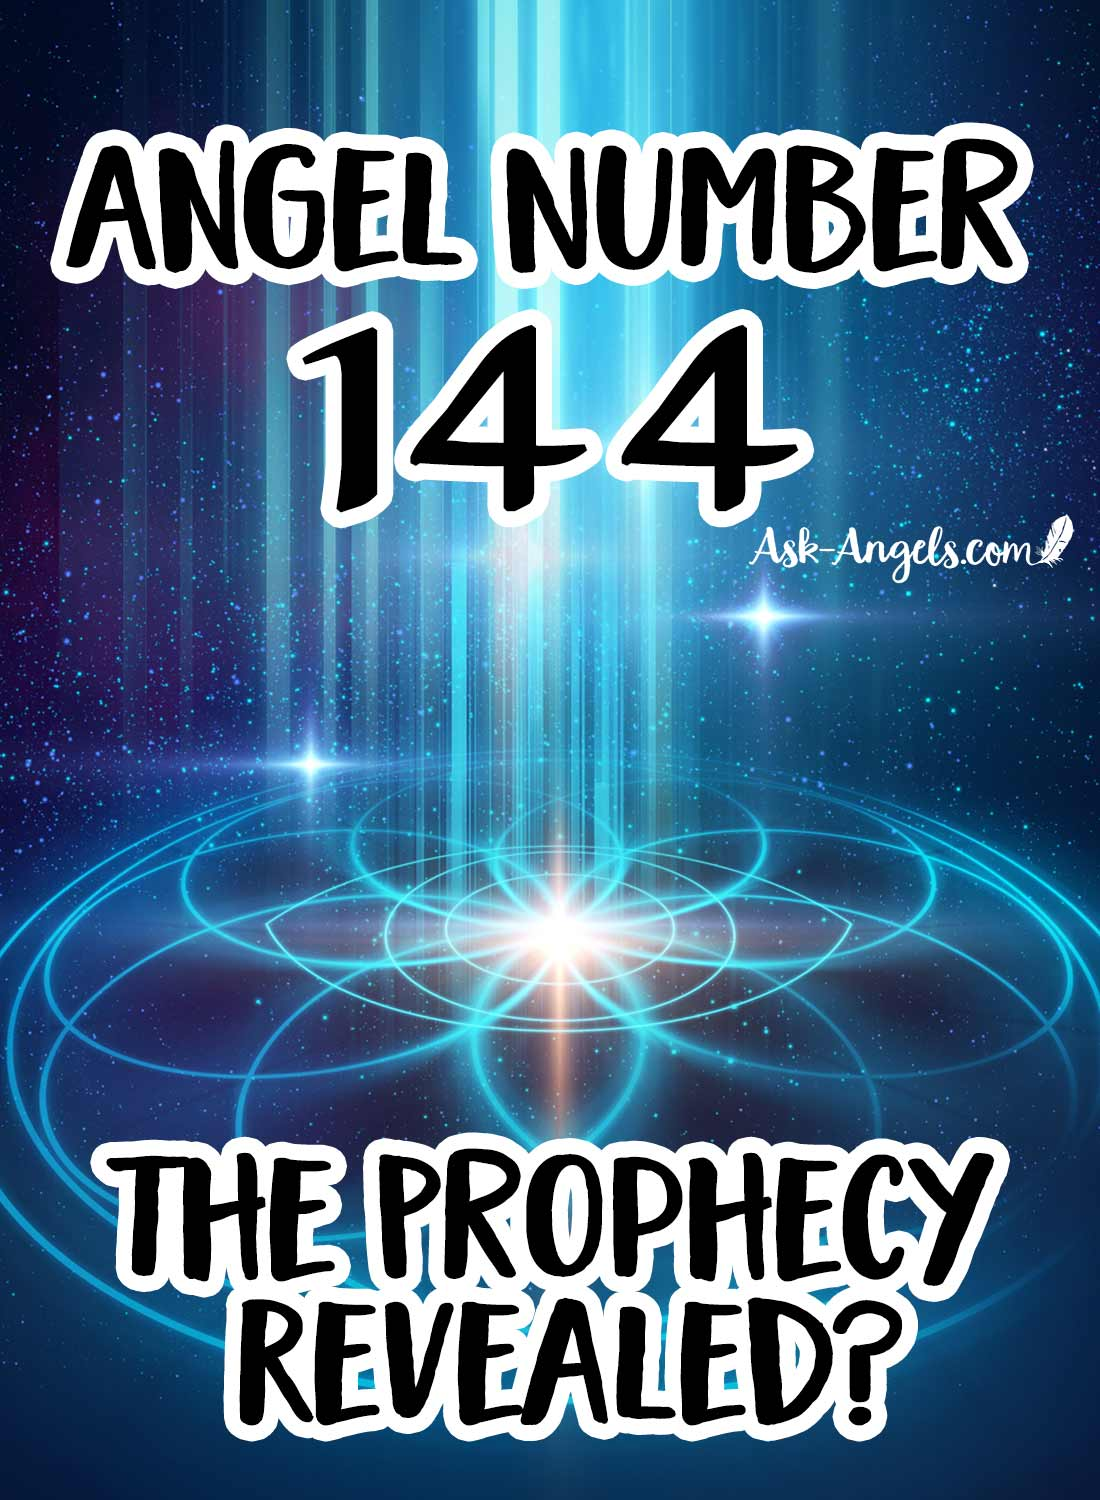 Angel Number 144 - The Prophecy of 144,000 Lightworkers Revealed?